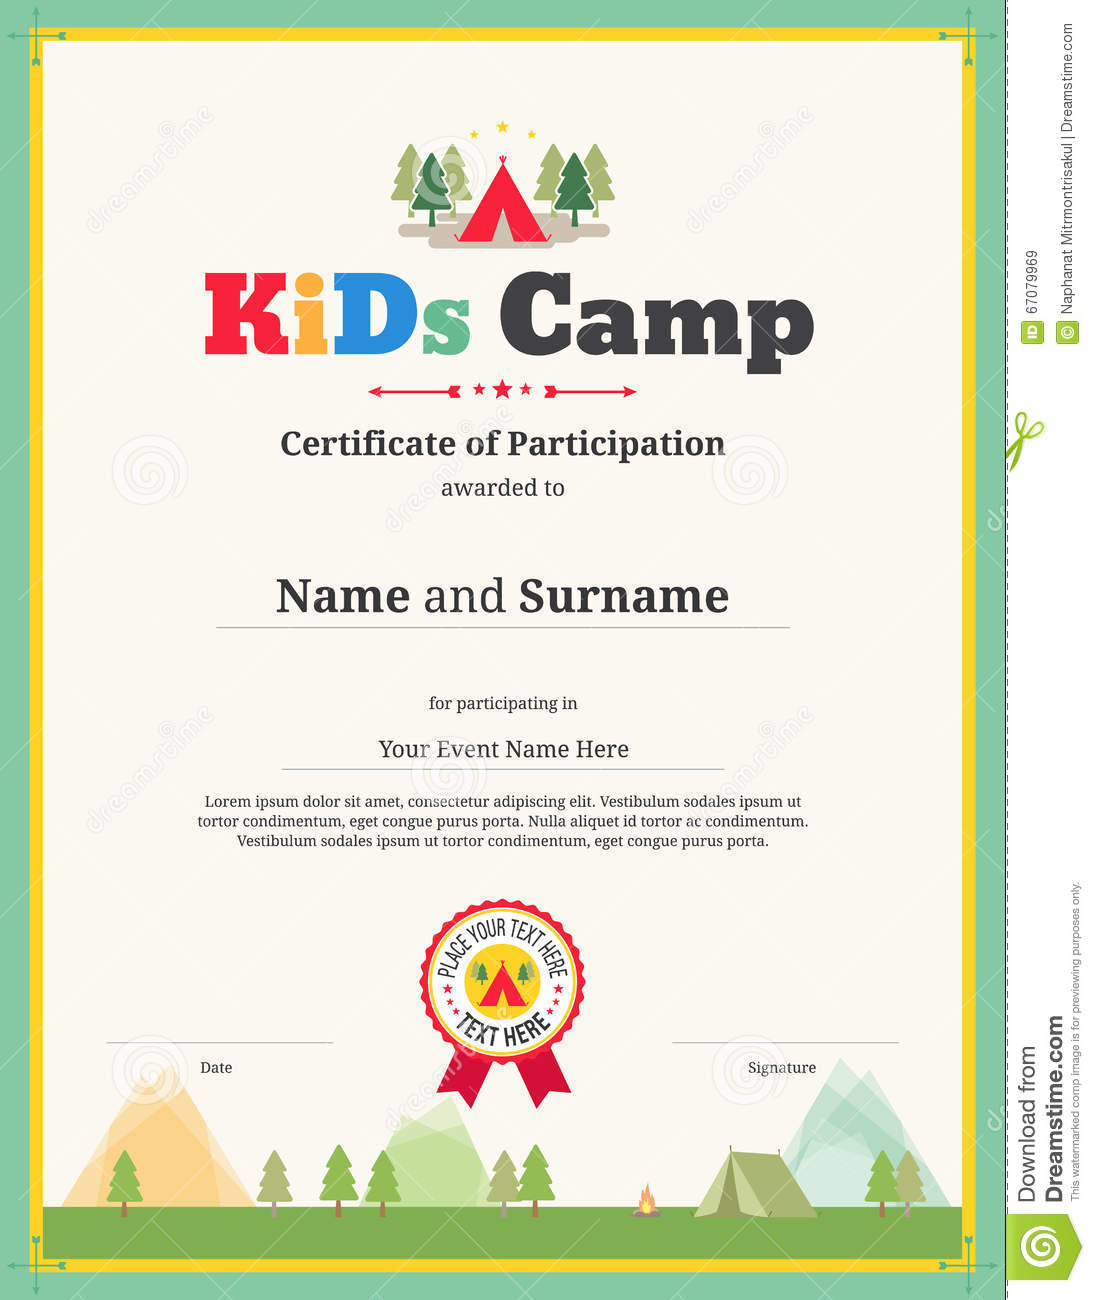 Kids Certificate Template In Vector For Camping Participation. Frame,  Layout.  Free Certificate Of Participation Template